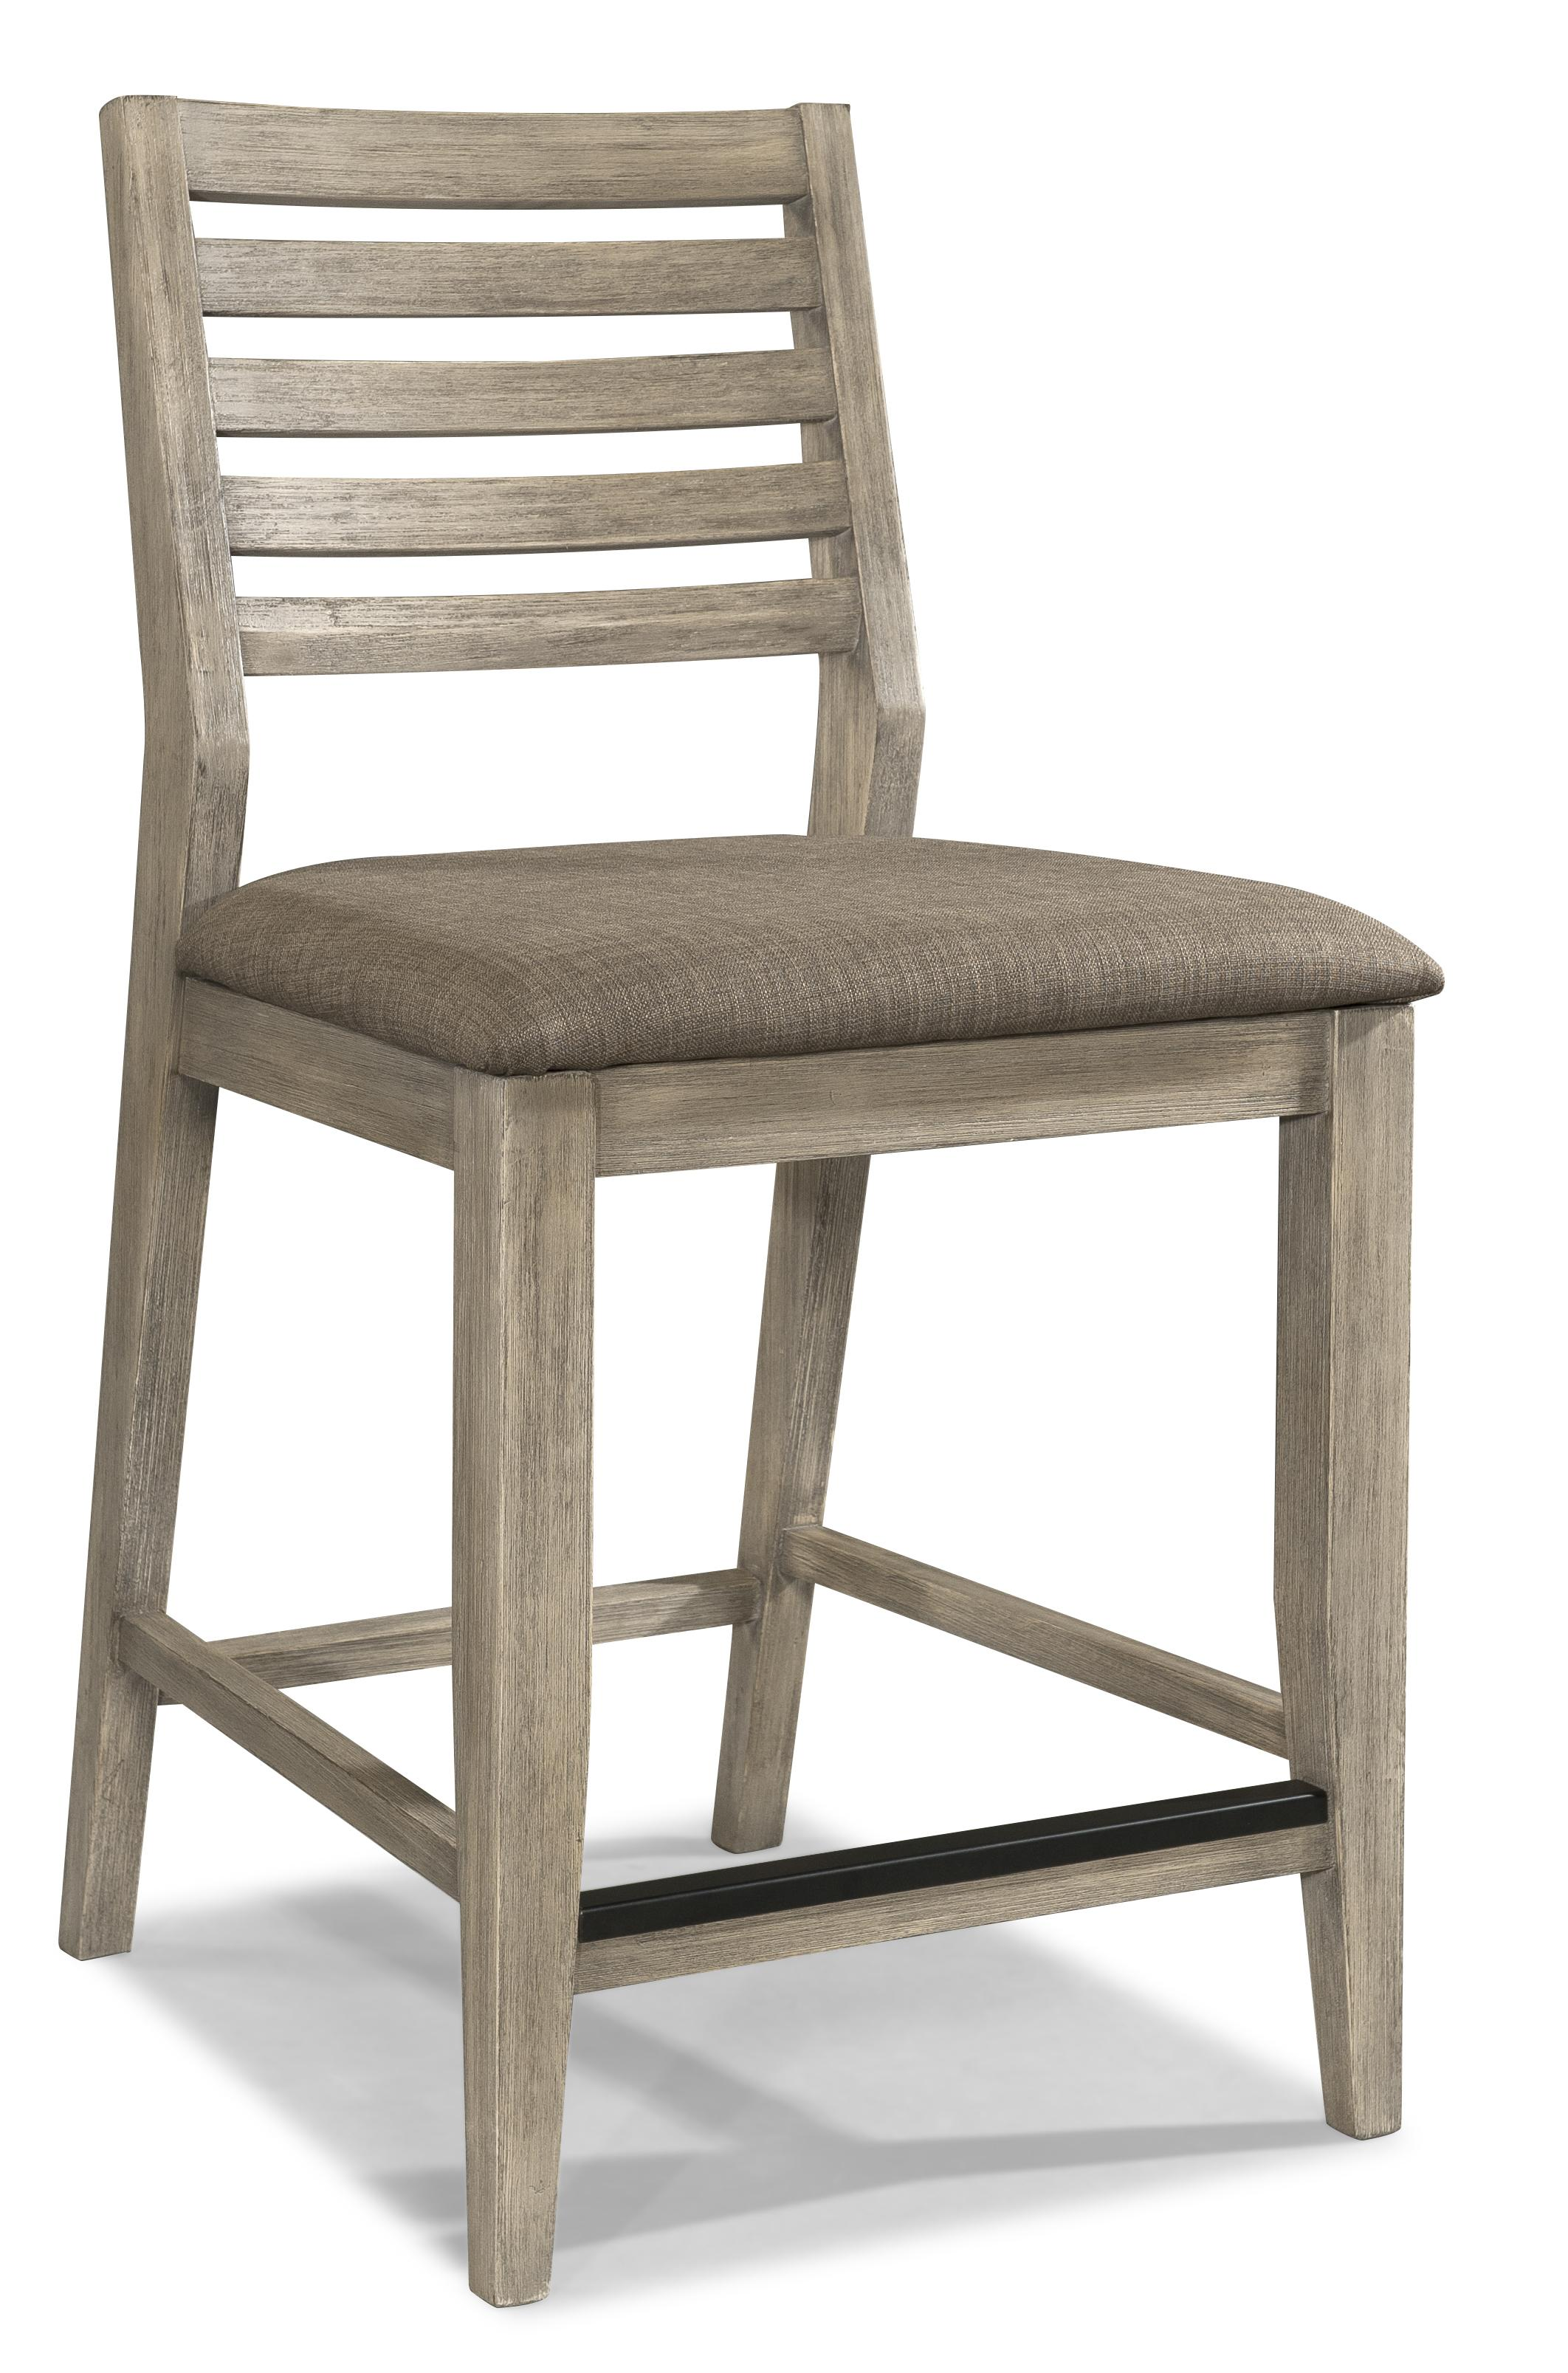 cresent fine furniture corliss landing counter stool in weathered driftwood grey set of 2 clearance by dining rooms outlet